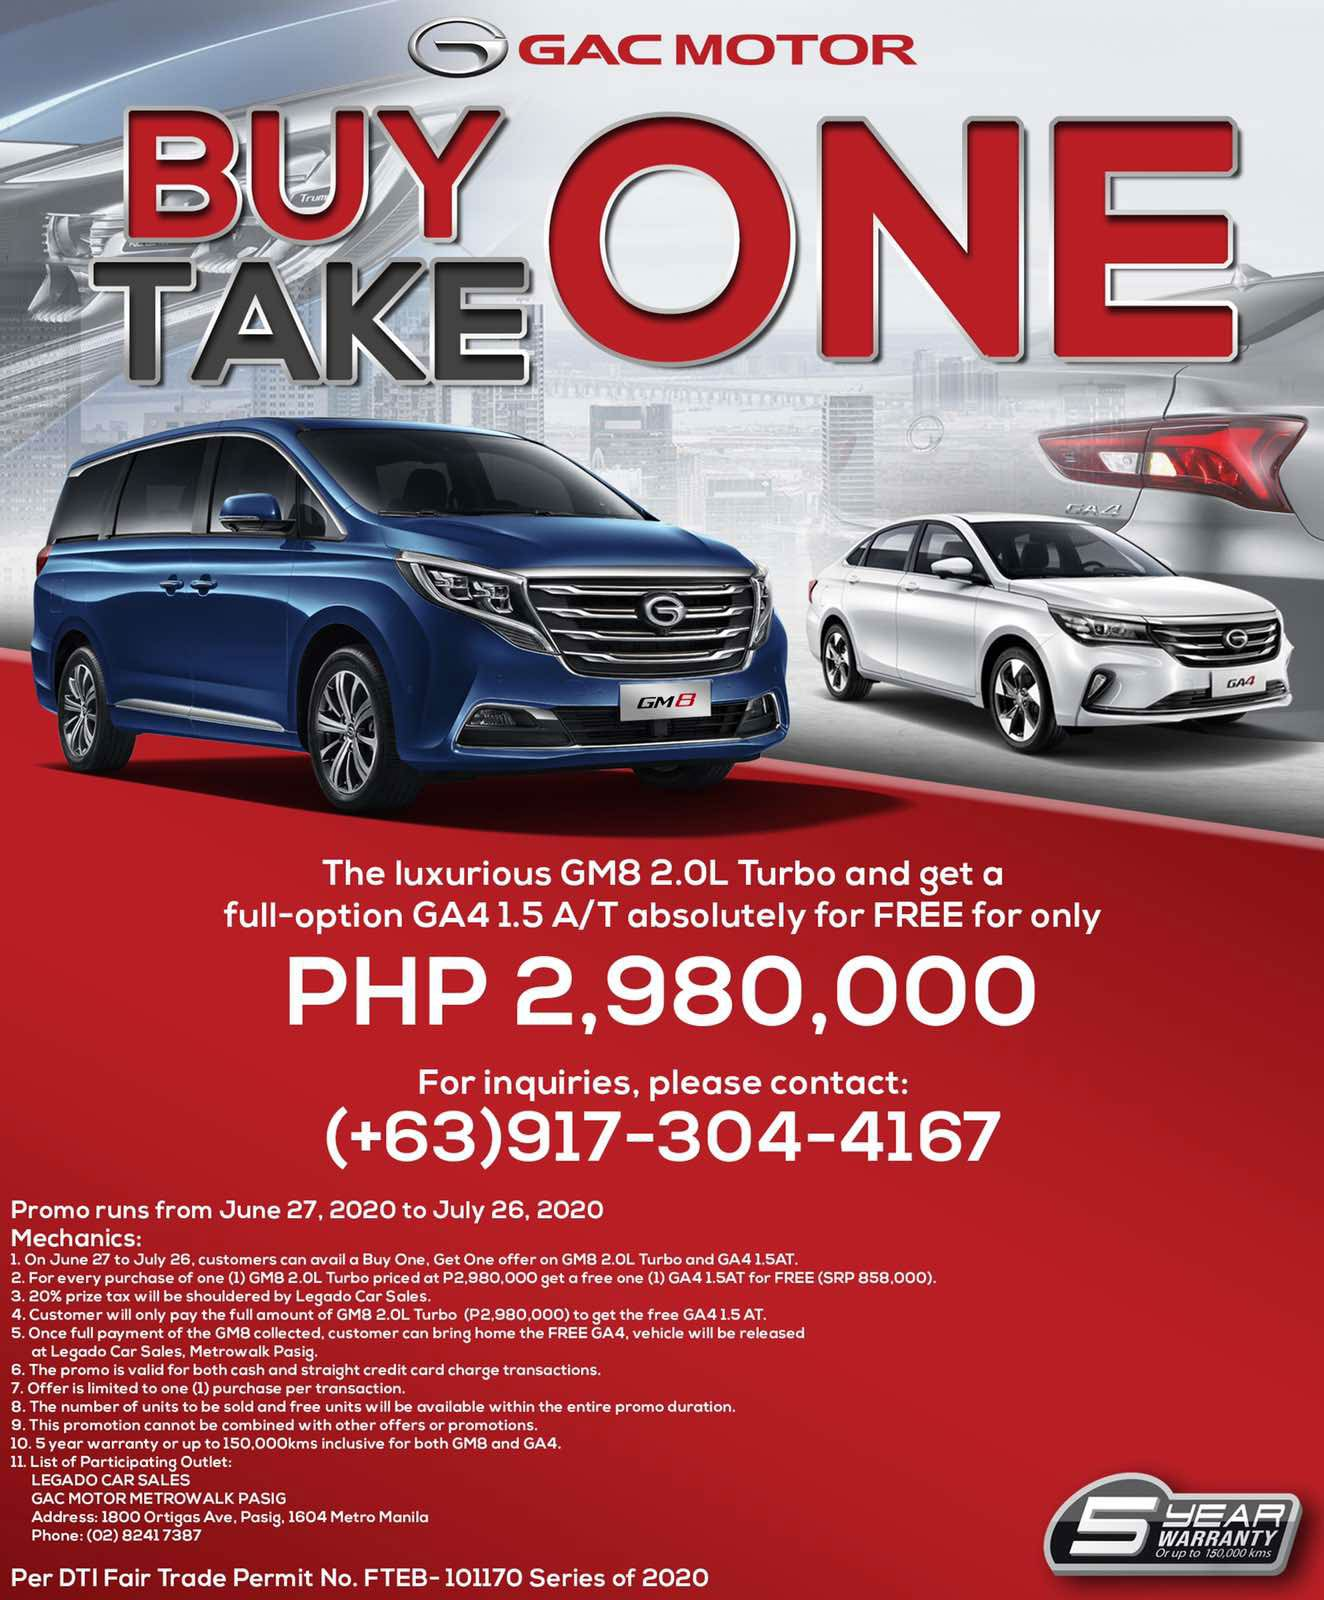 Industry News Gac Motor Philippines Offers Ultimate Buy One Take One Promo Auto Focus